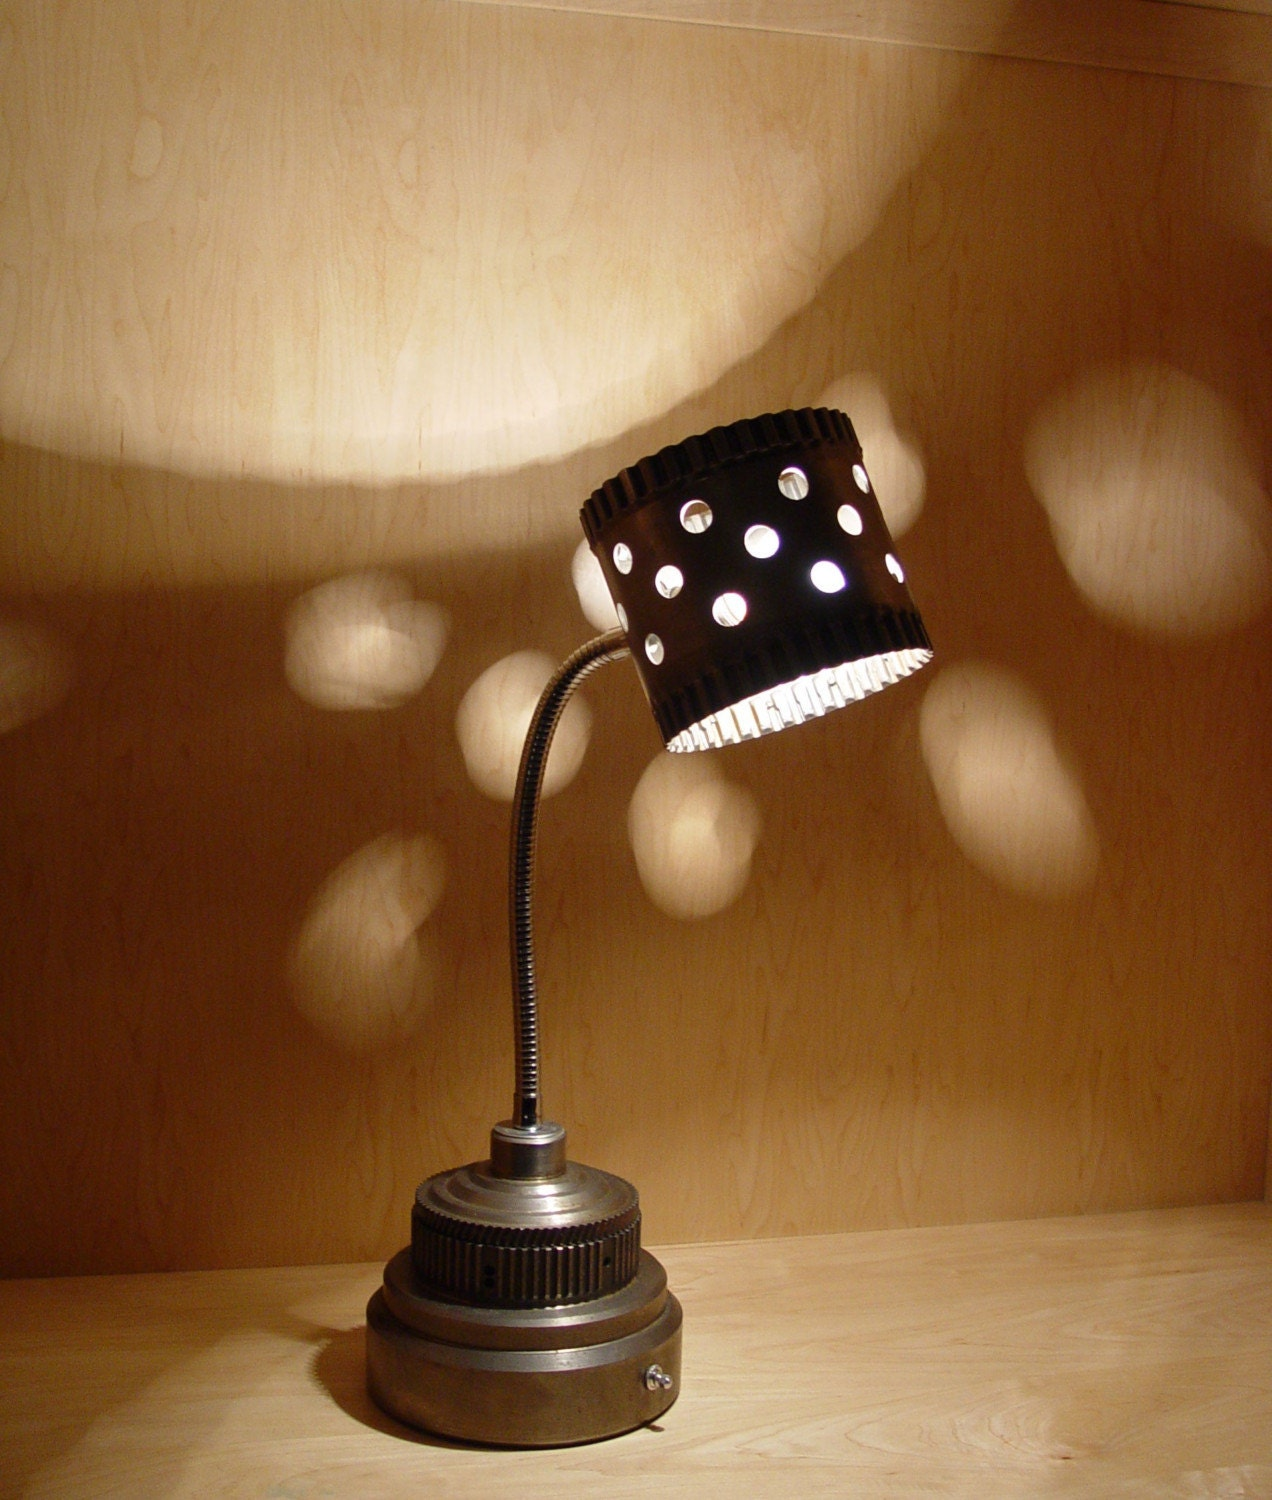 Etsy :: sksullivan667 :: The Desktop Arm Lamp from etsy.com